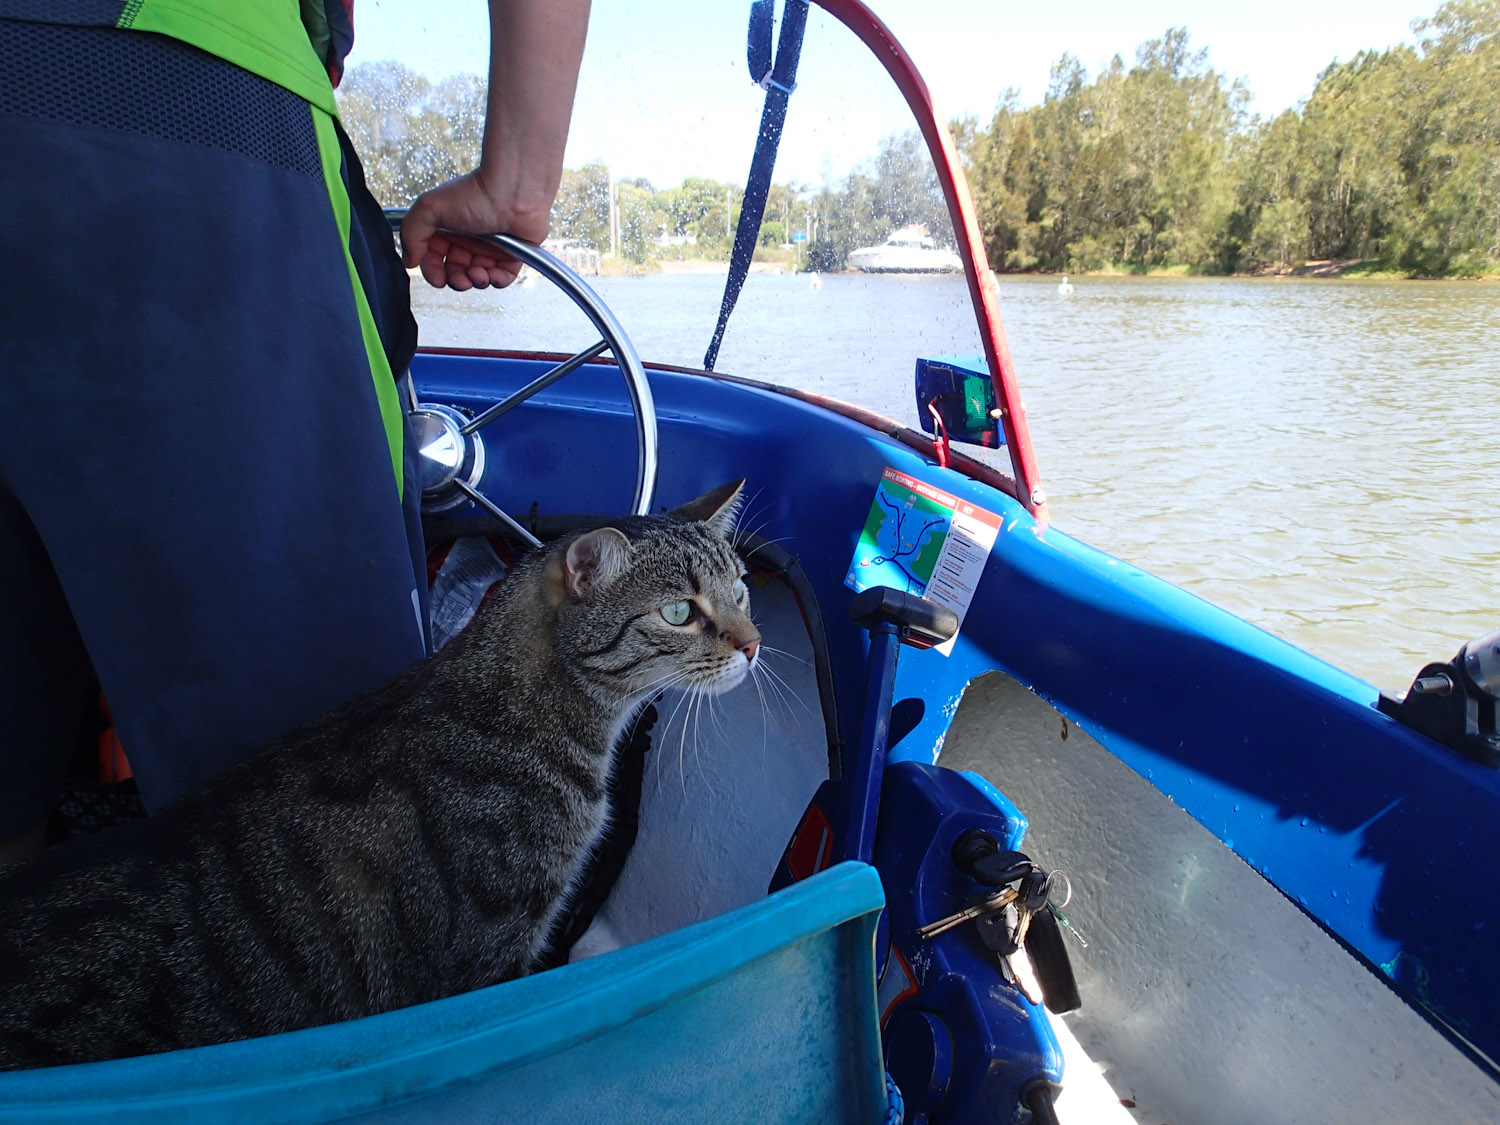 taking cat for ride in boat